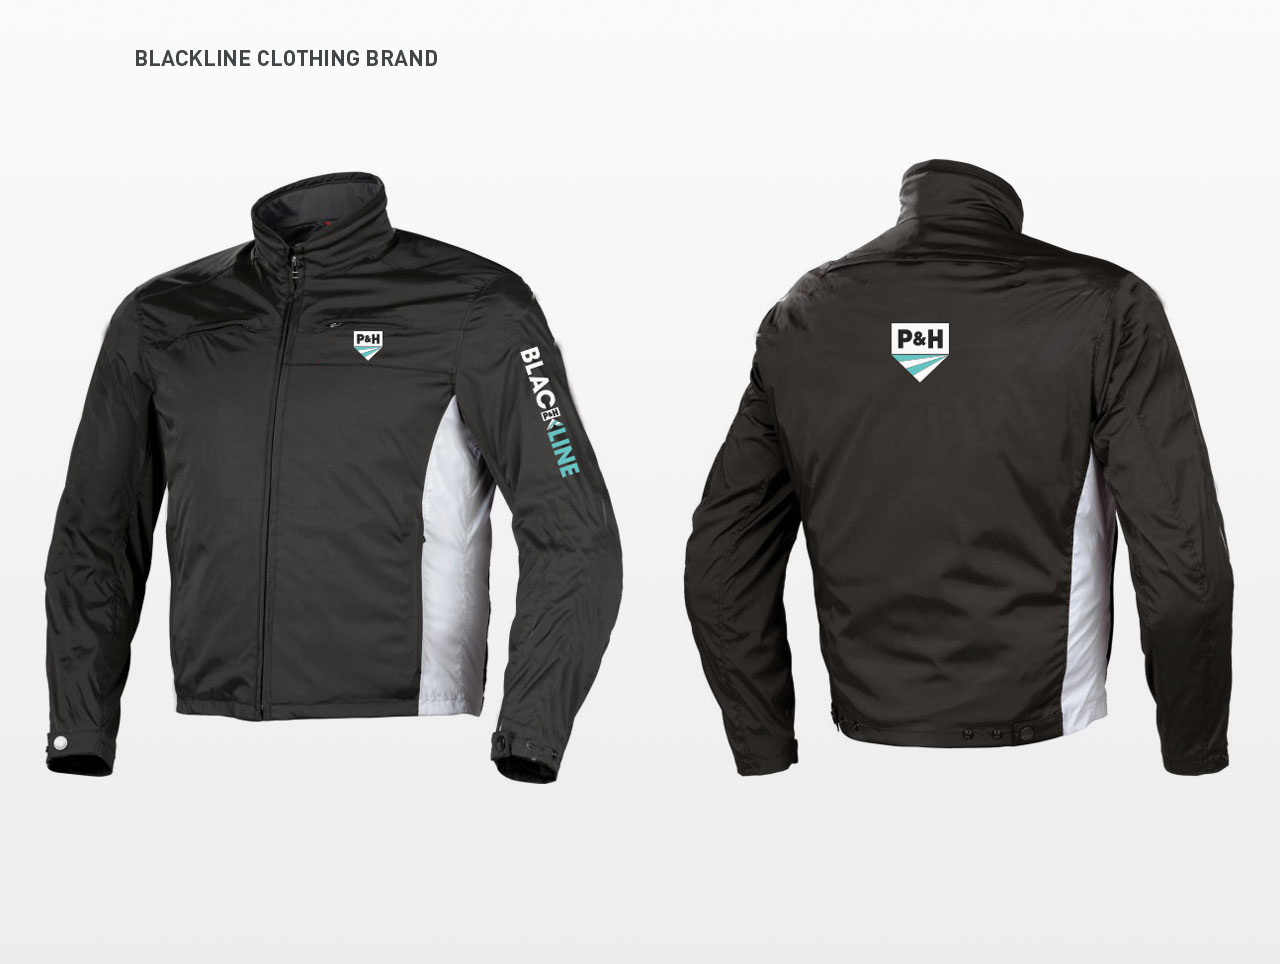 sports motorcycle clothing brand design